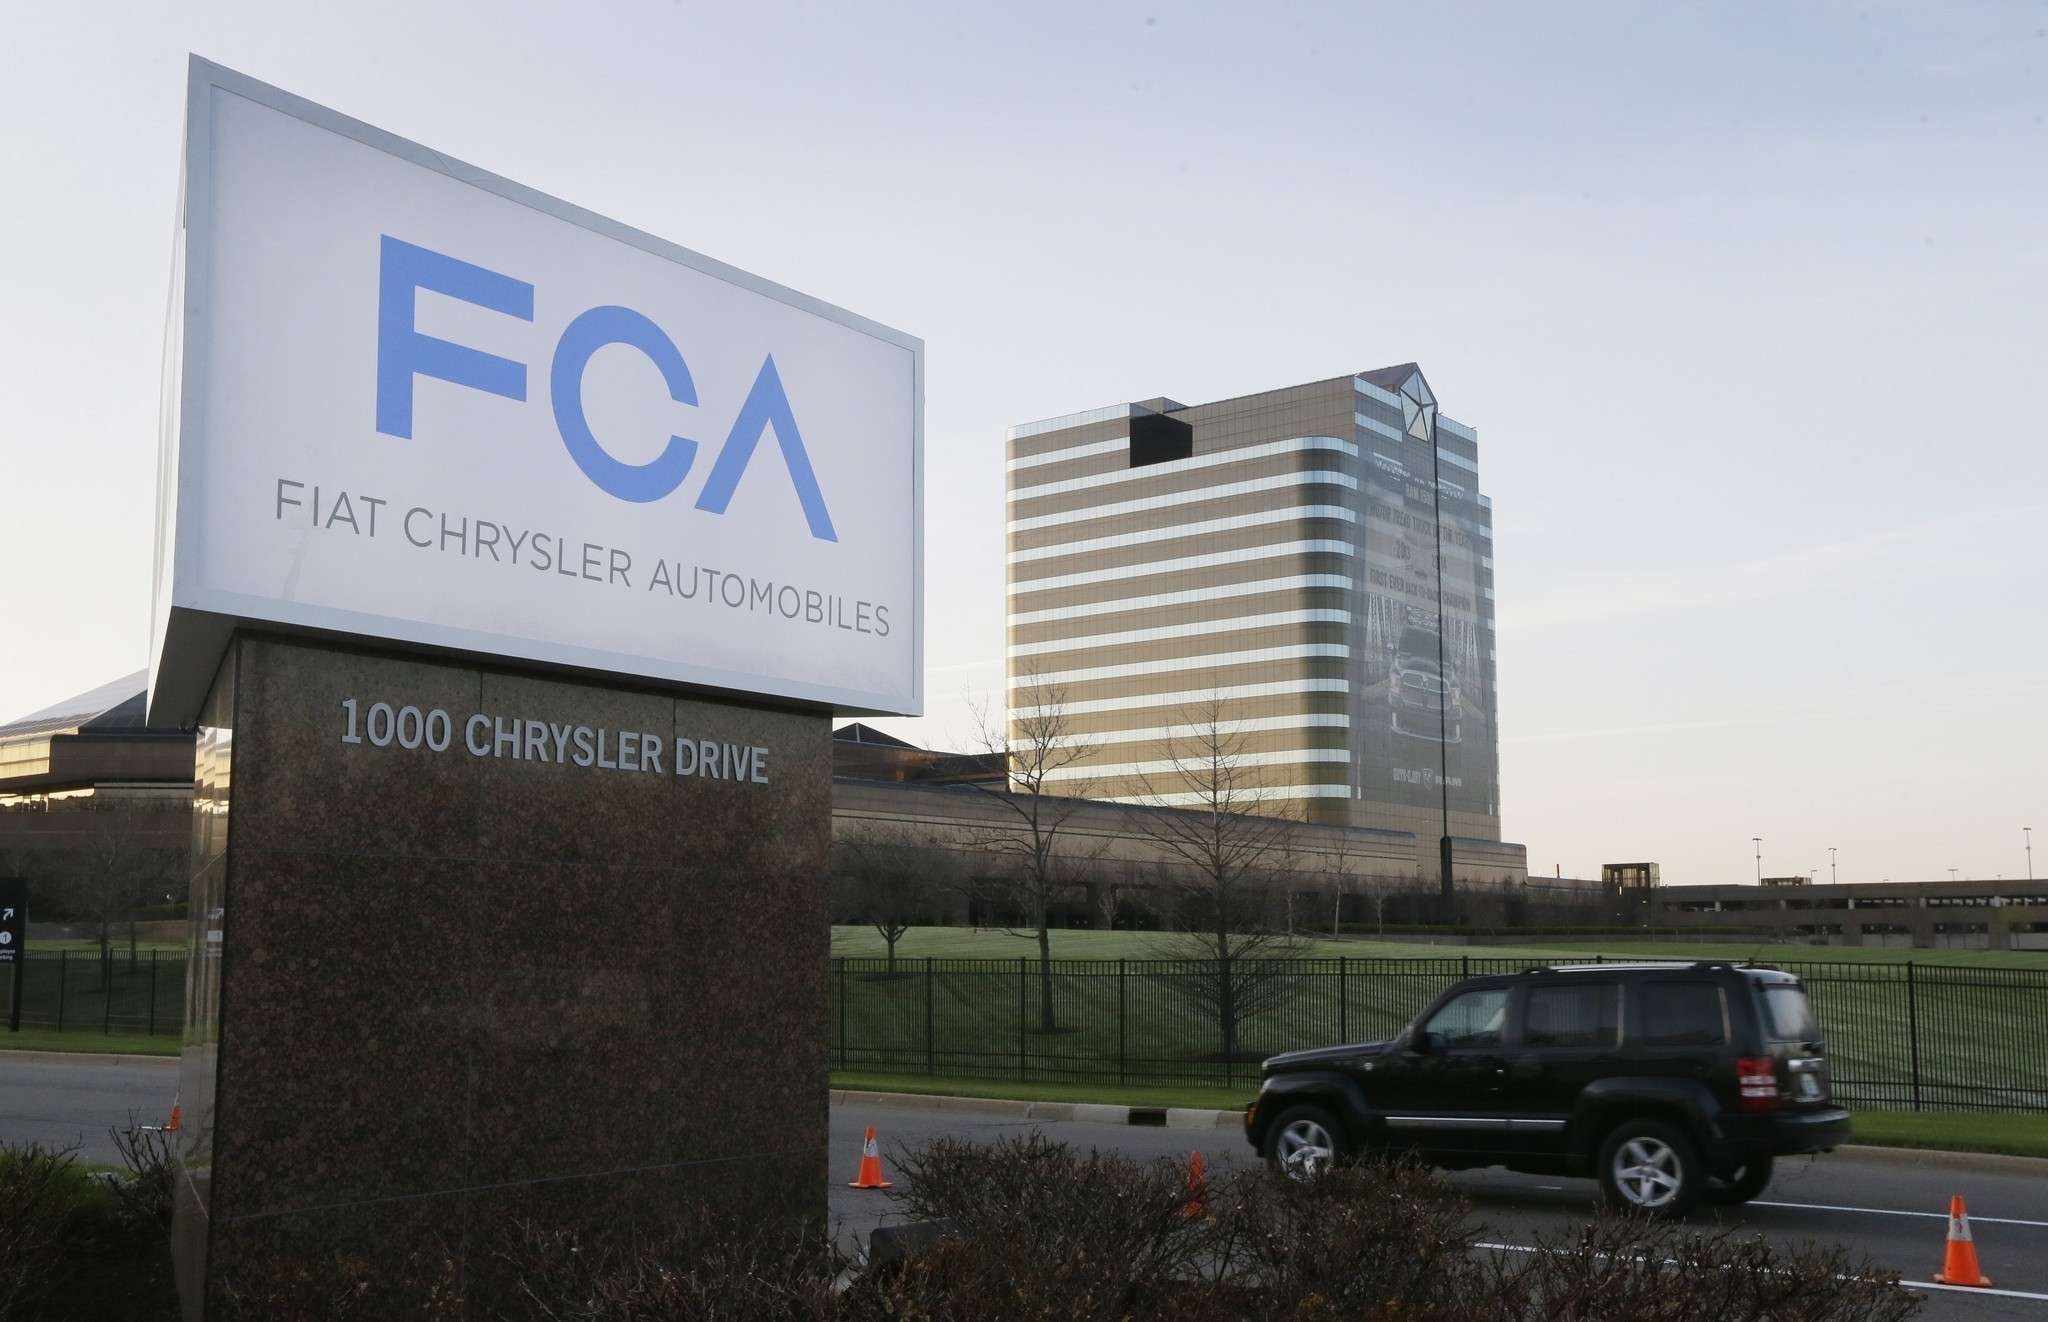 Fiat Chrysler Automobiles fixes sales reporting method that allegedly squeezed dealers - Chicago Tribune